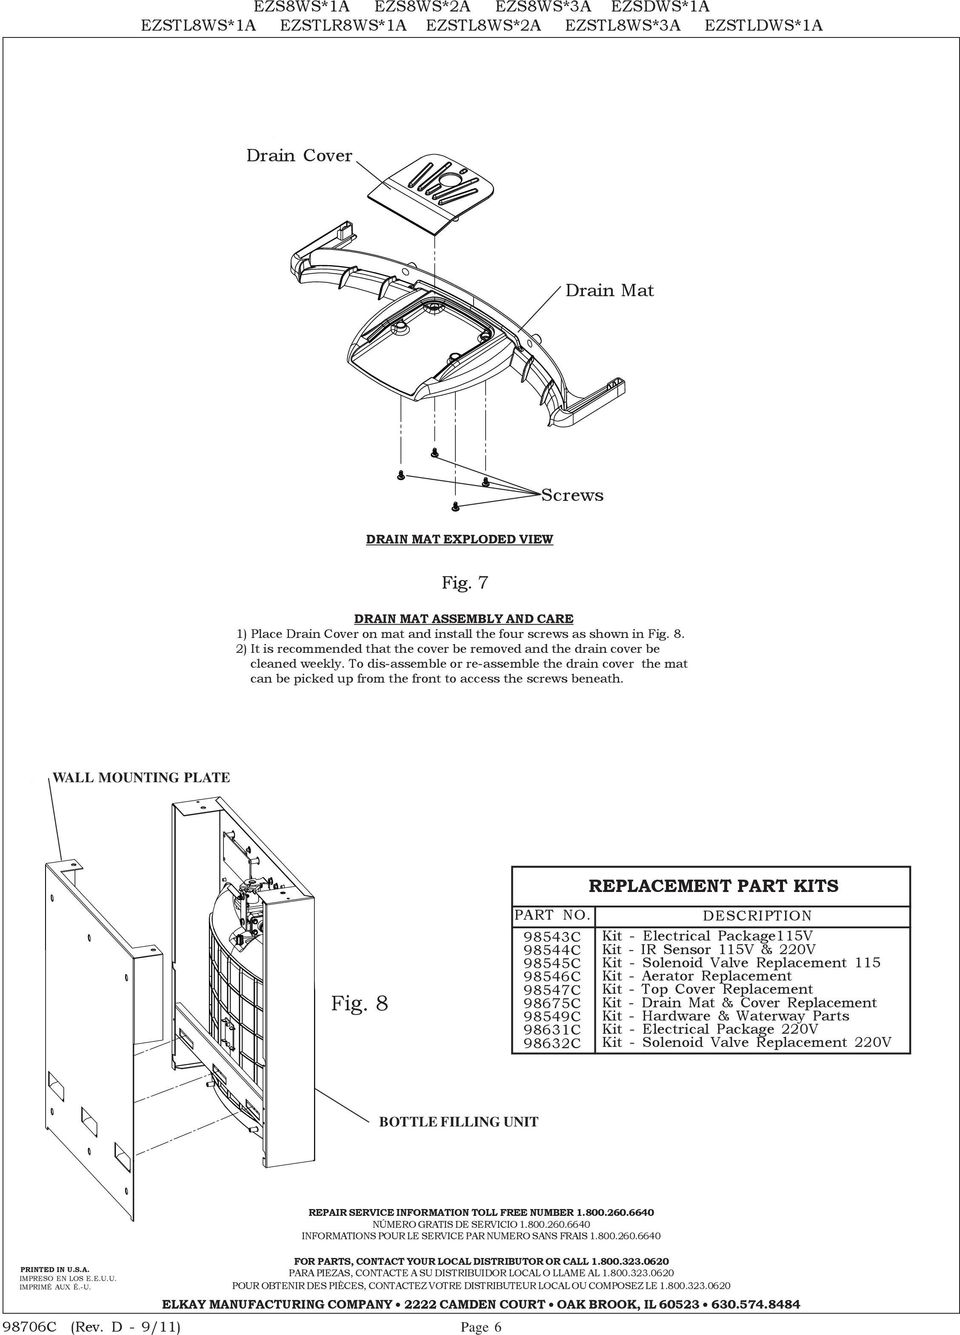 To dis-assemble or re-assemble the drain cover the mat can be picked up from the front to access the screws beneath. WALL MOUNTING PLATE Fig. 8 REPLACEMENT PART KITS PART NO.